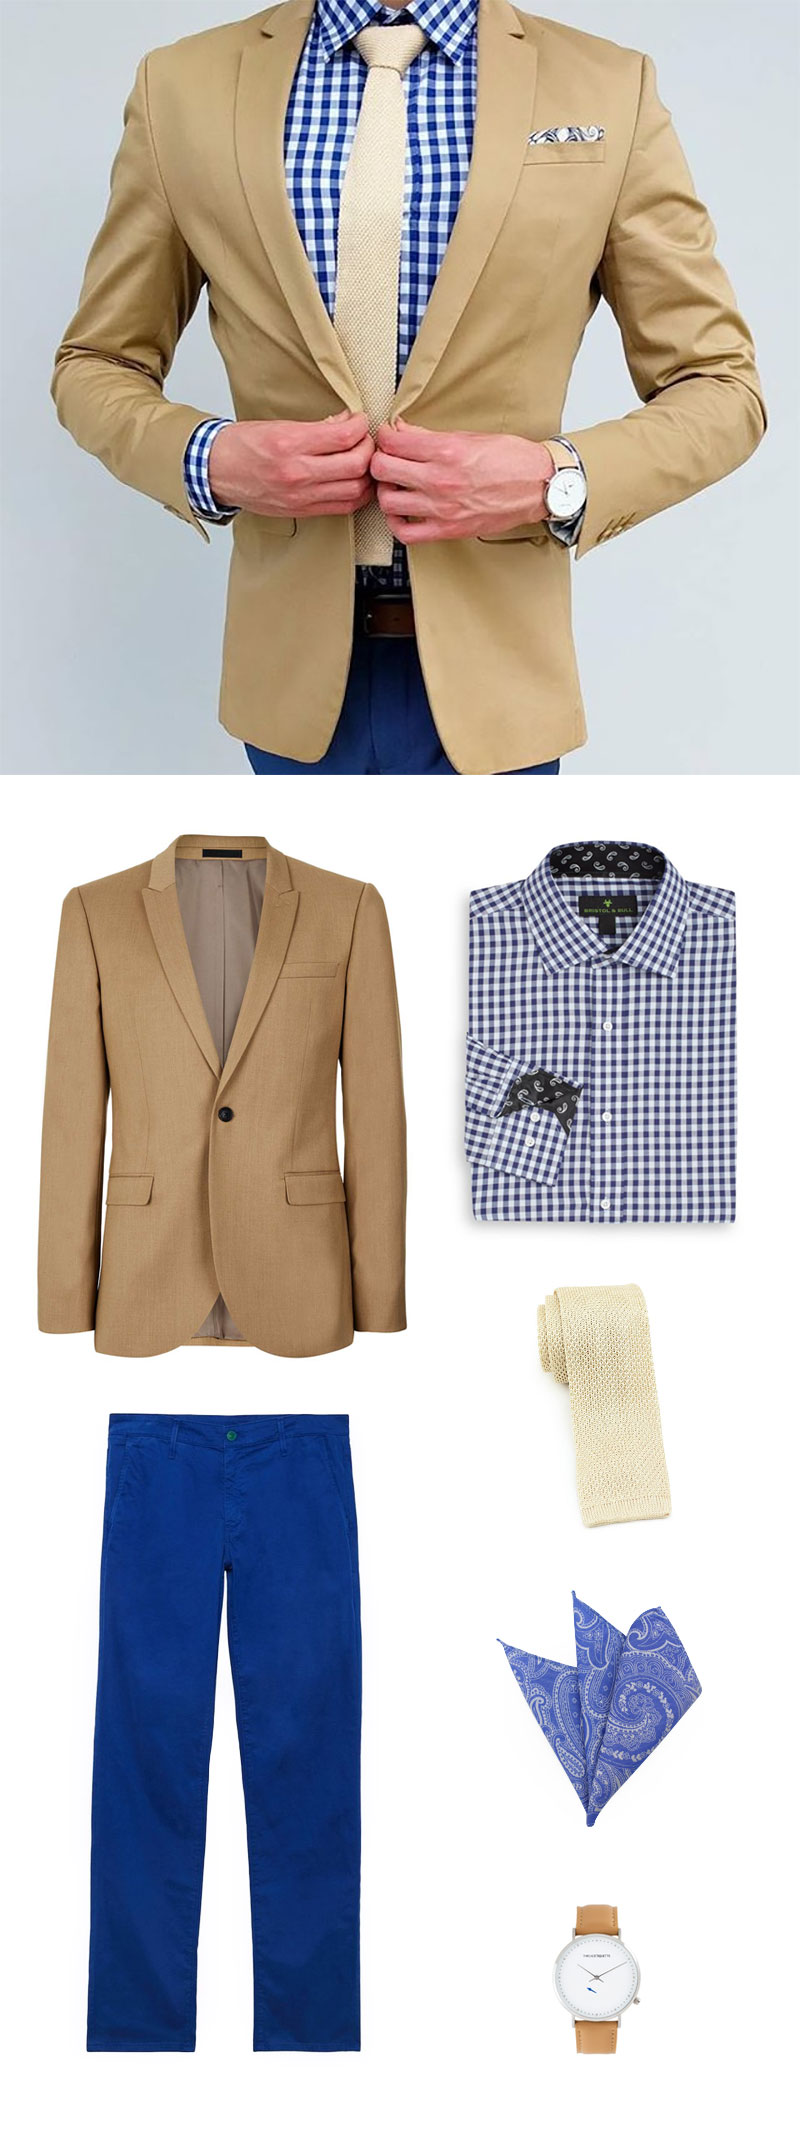 Shop This Look: Golden Cream Knit Tie + Gingham Check Shirt